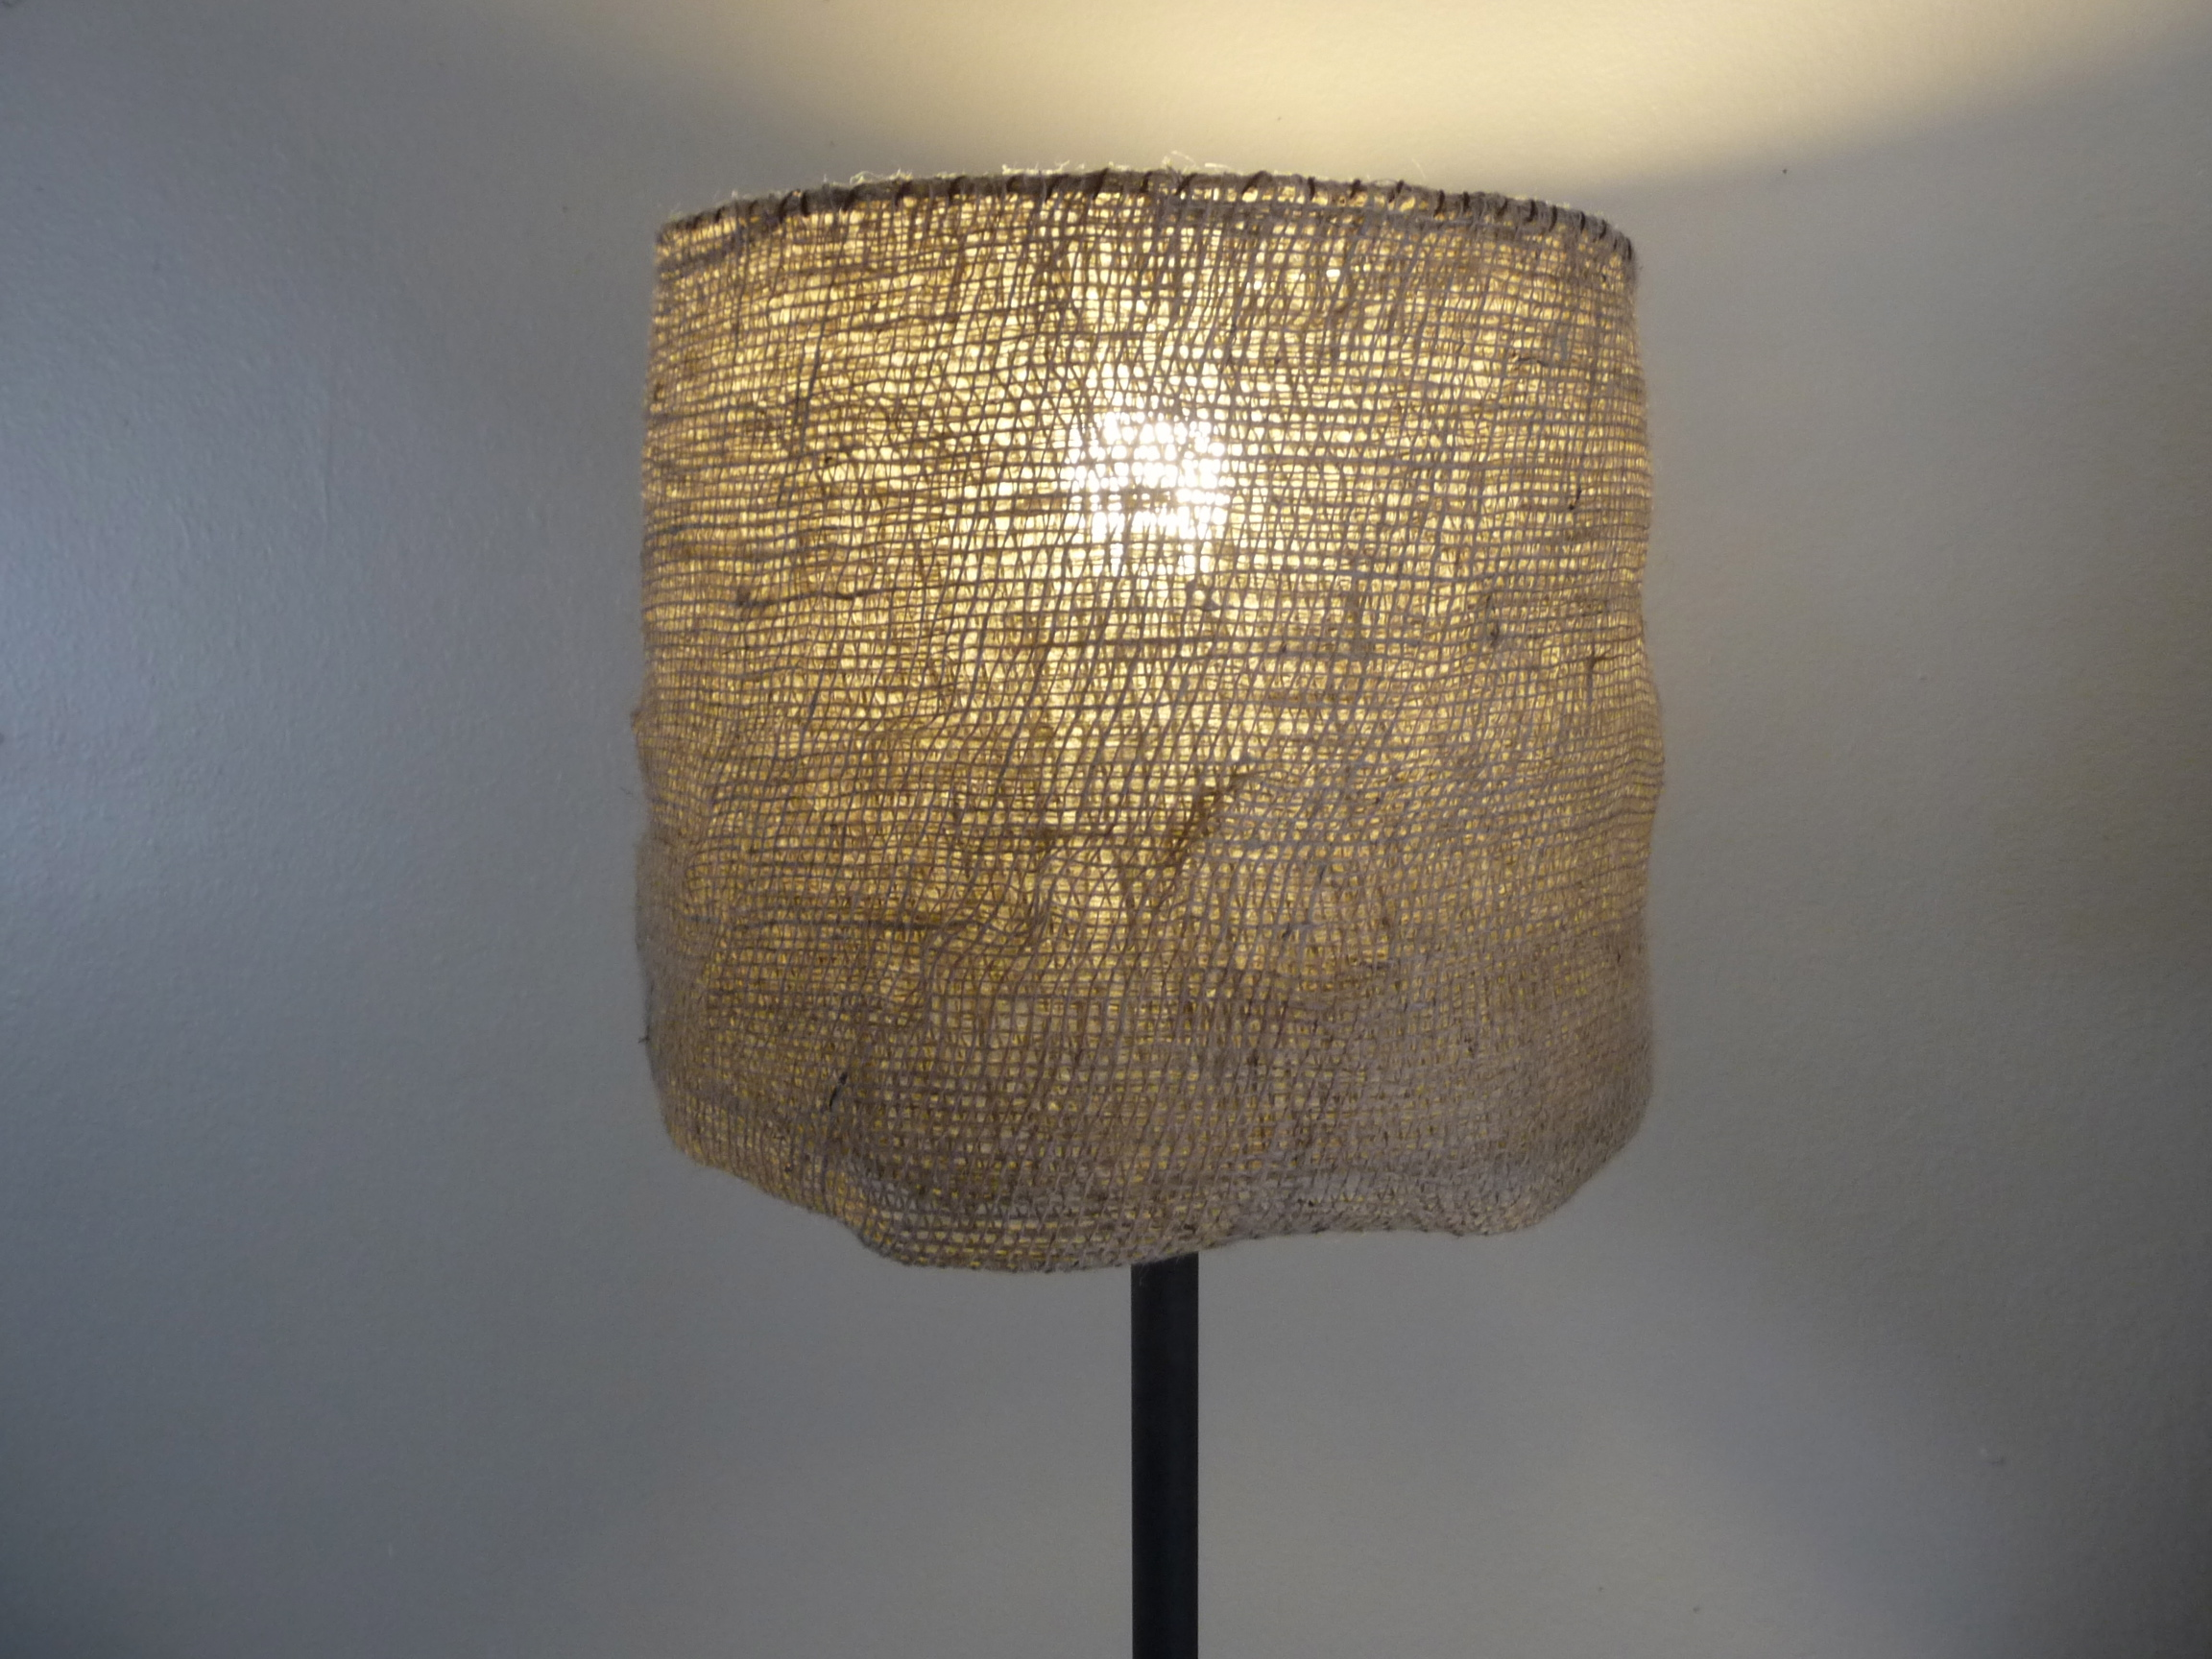 Diy garden burlap lamp shade craft organic - Diy lamp shade ...